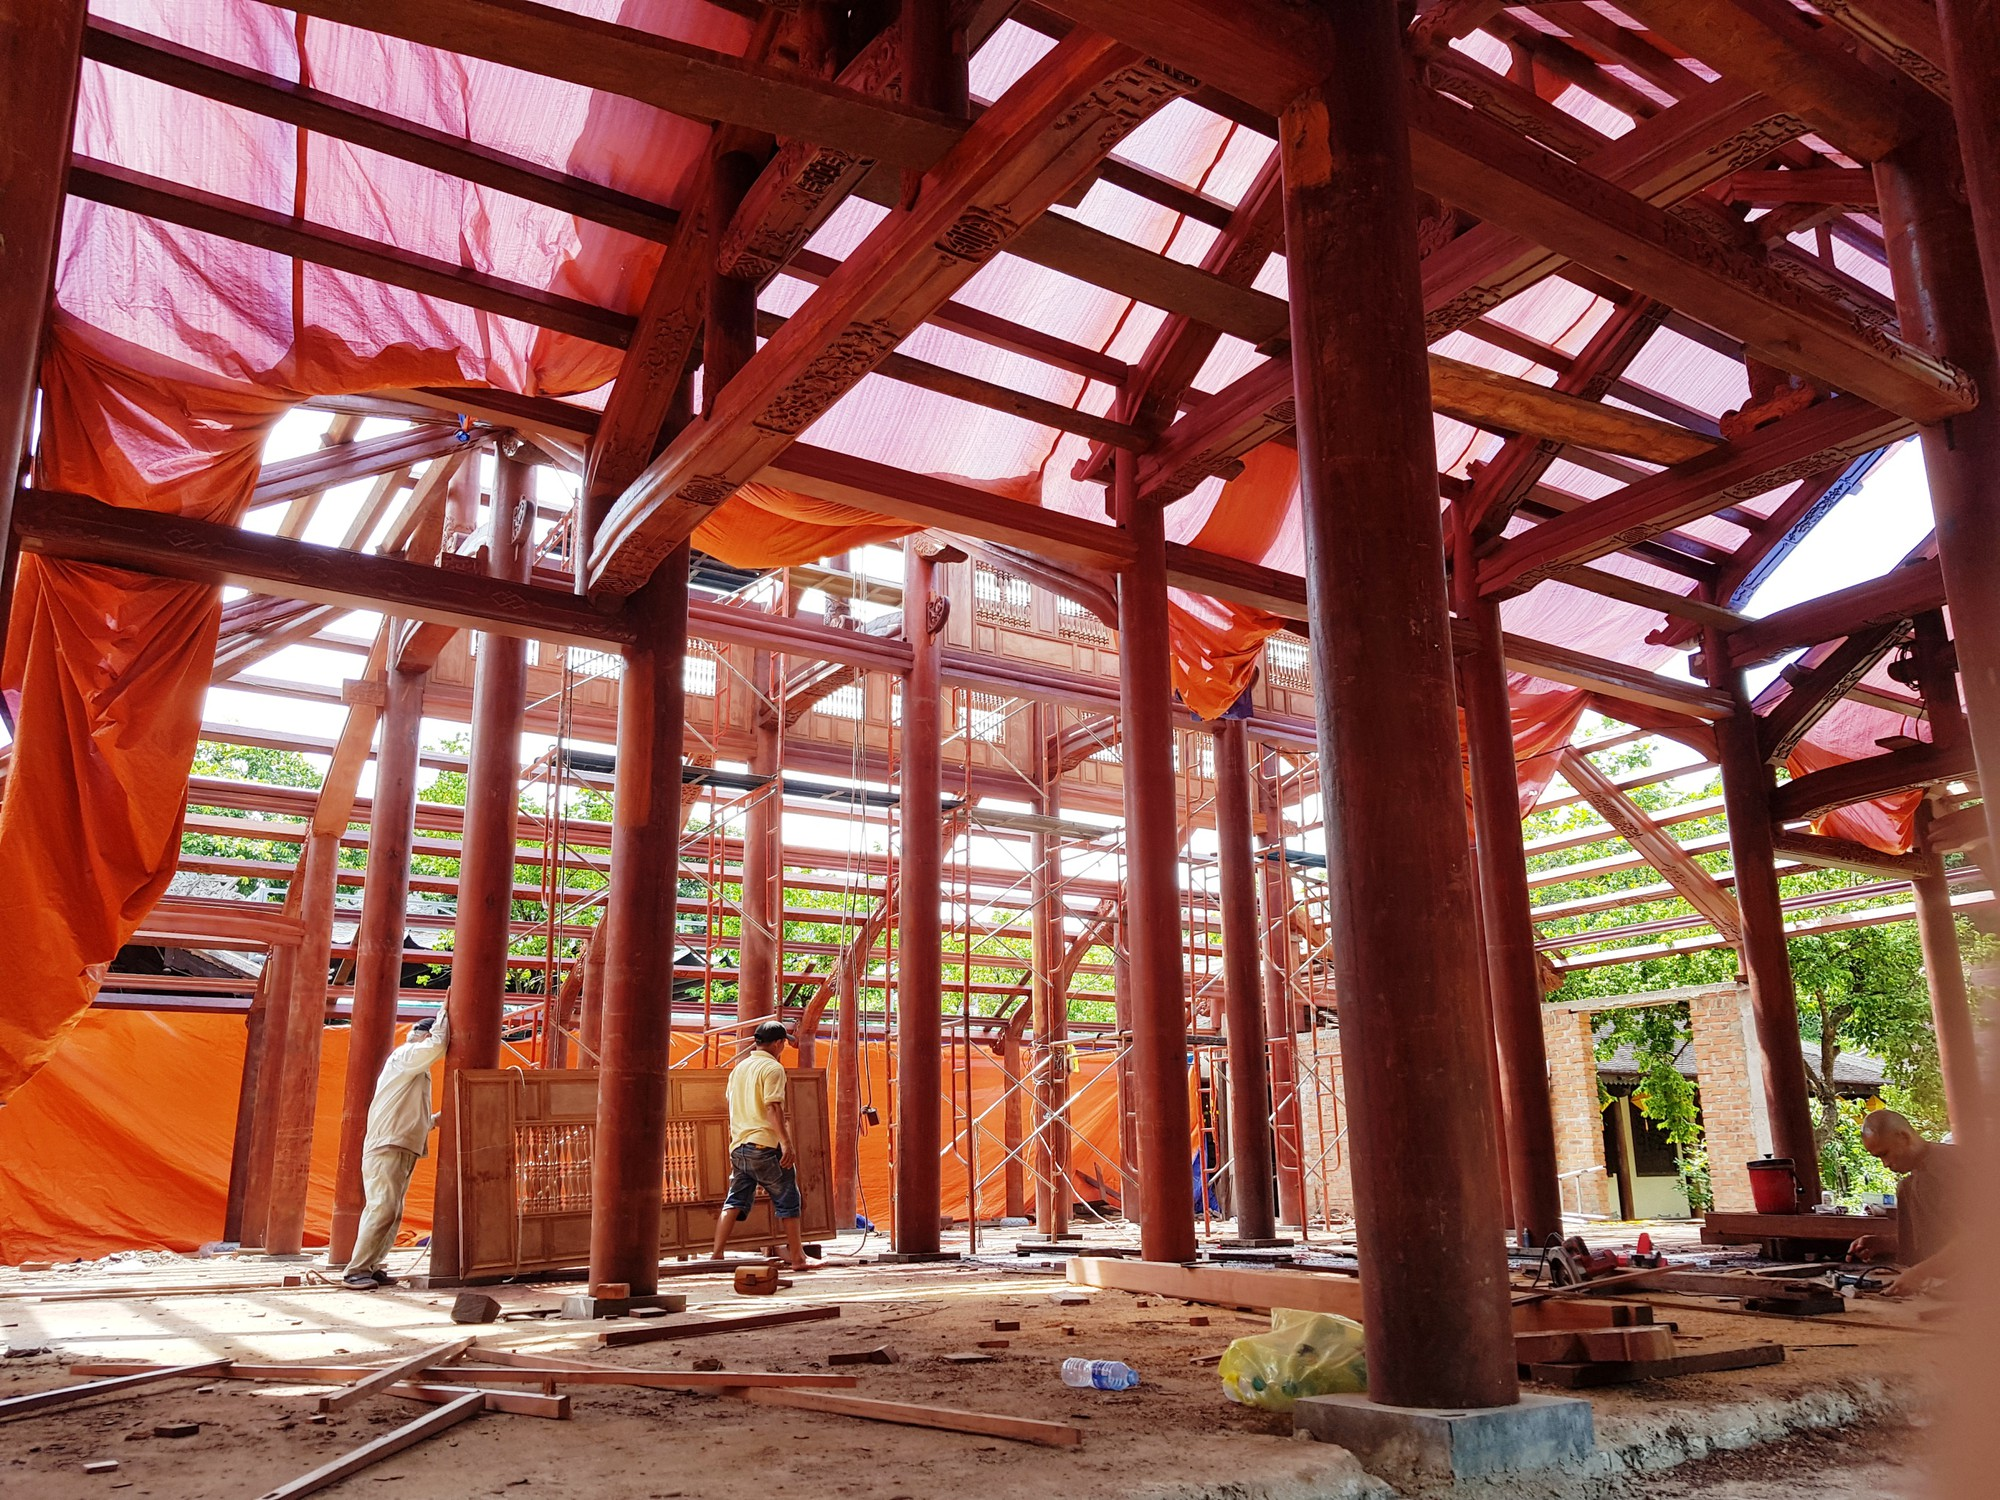 Workers build the new main structure of the Tu Hieu Pagoda in Hue, Vietnam. Photo: An Nhien / Tuoi Tre